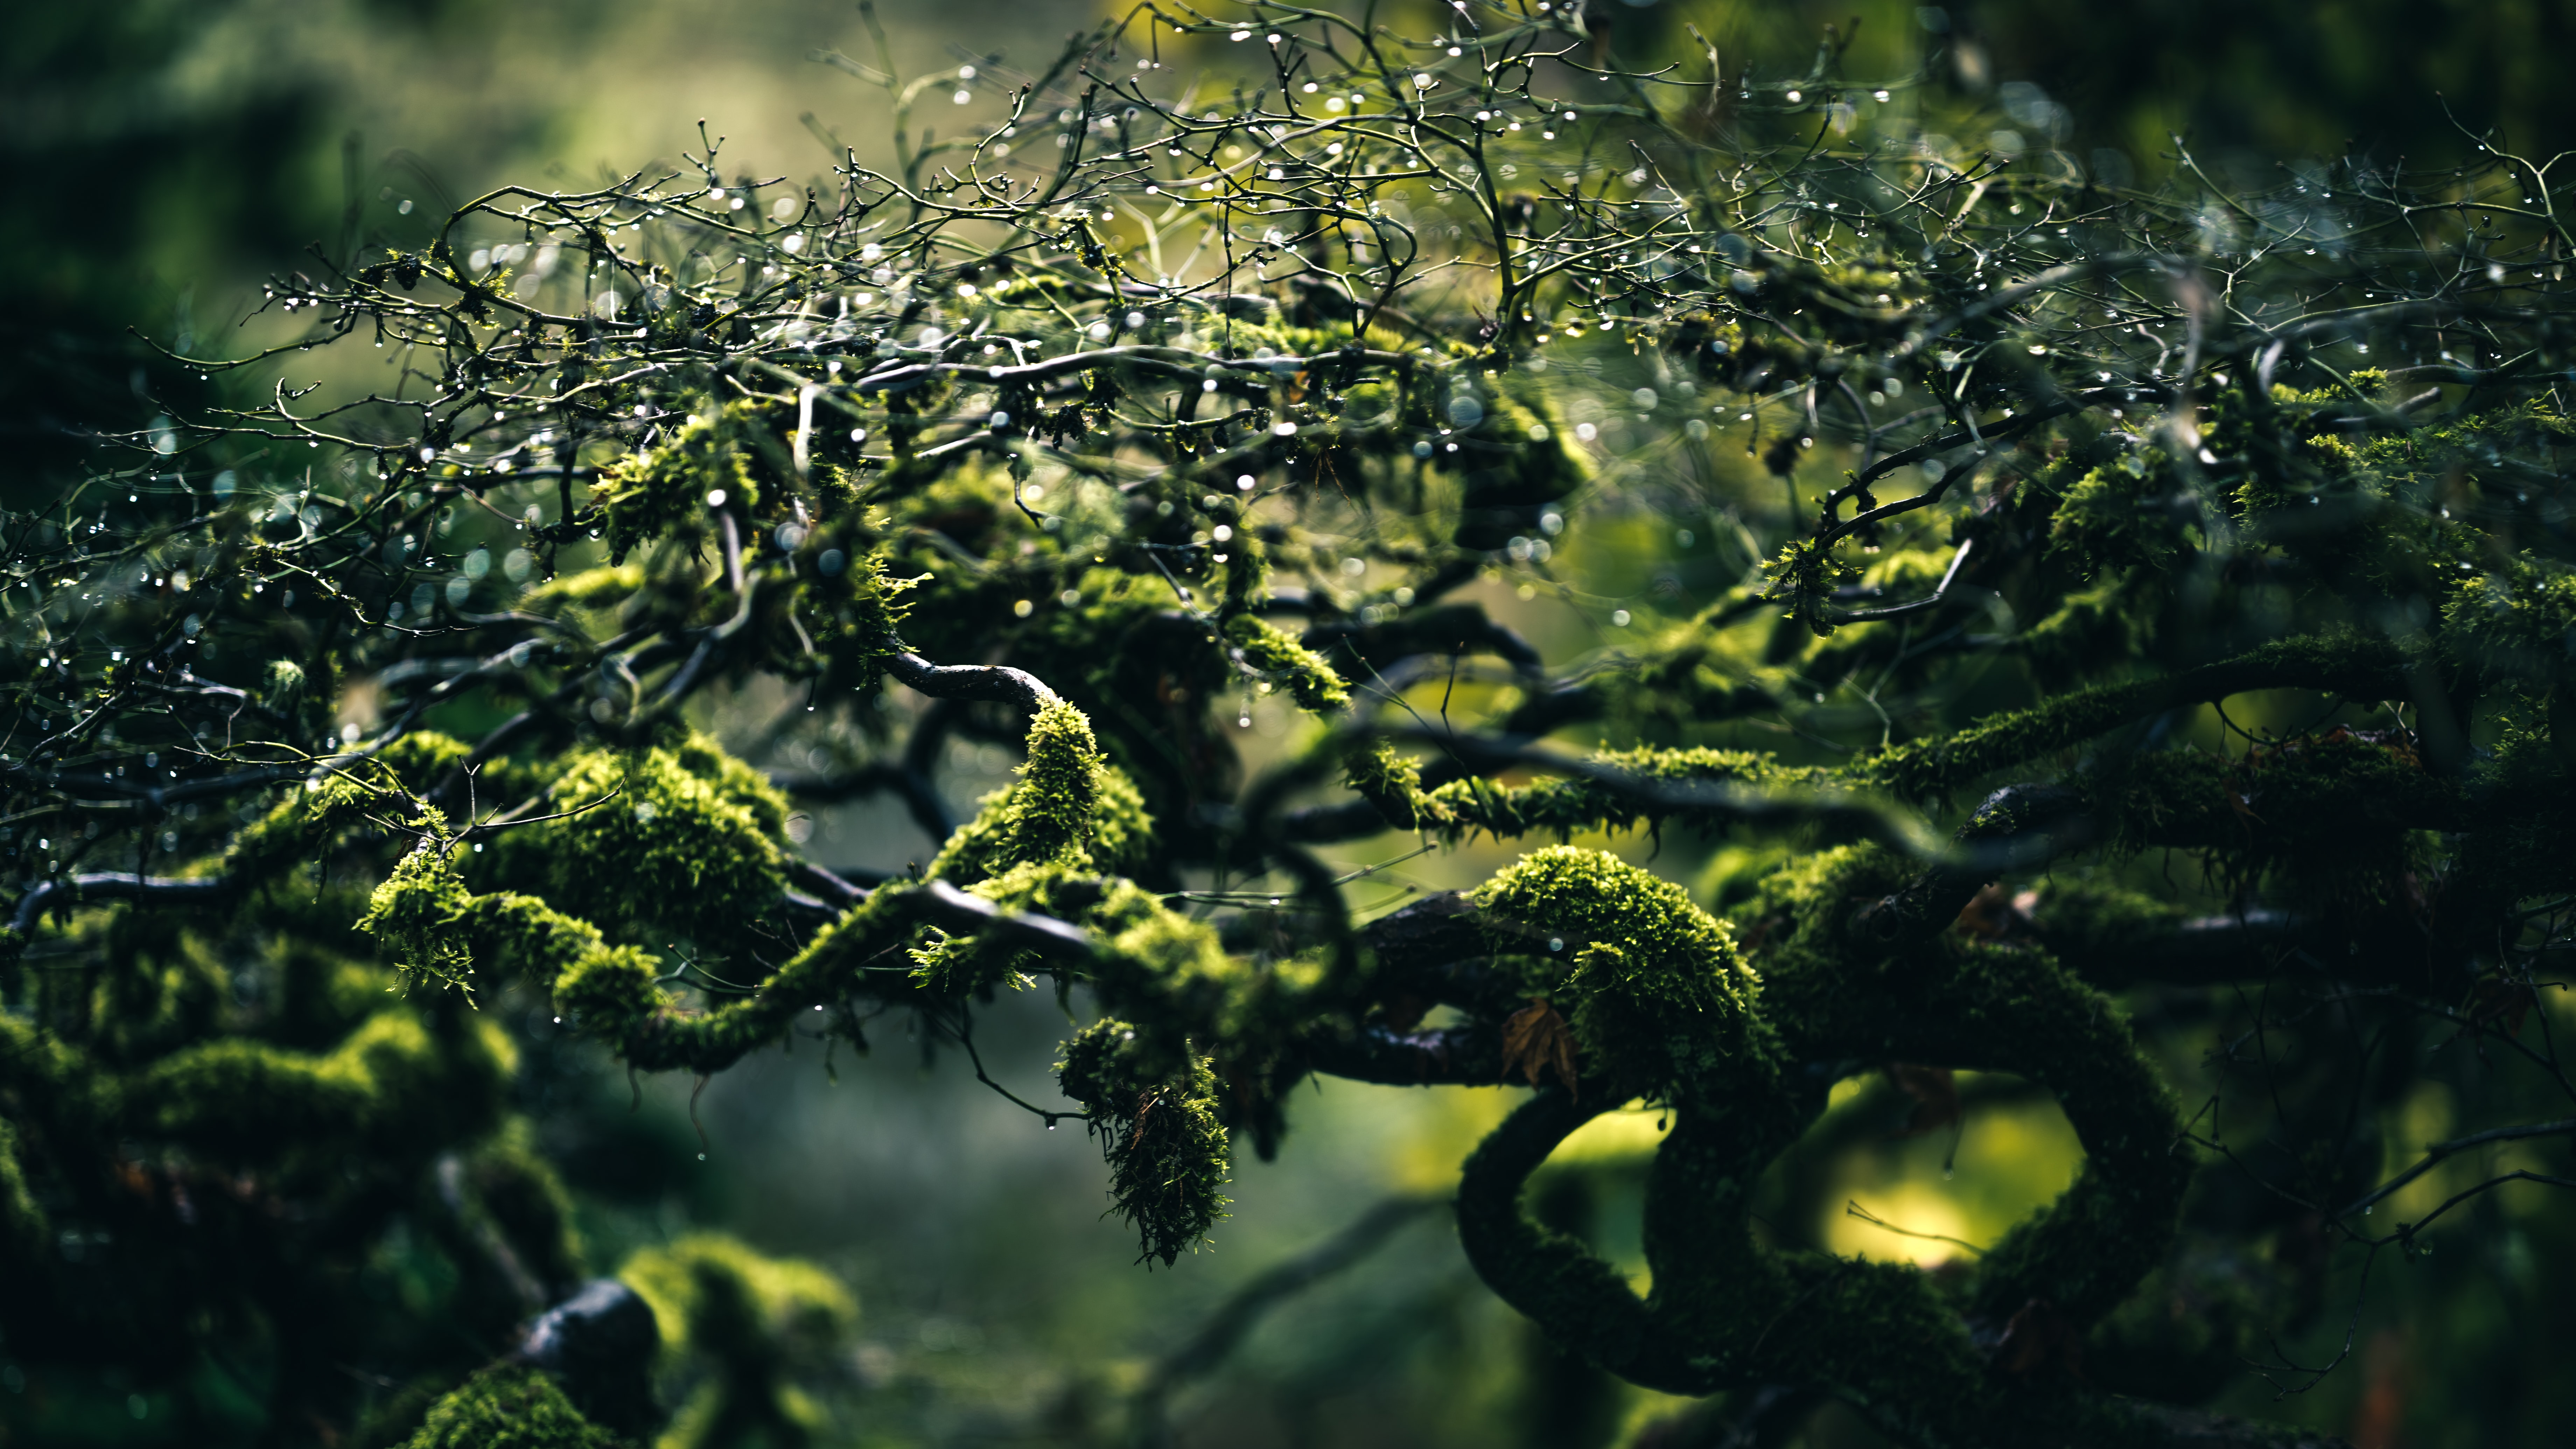 selective focus photo of moss on plant branches